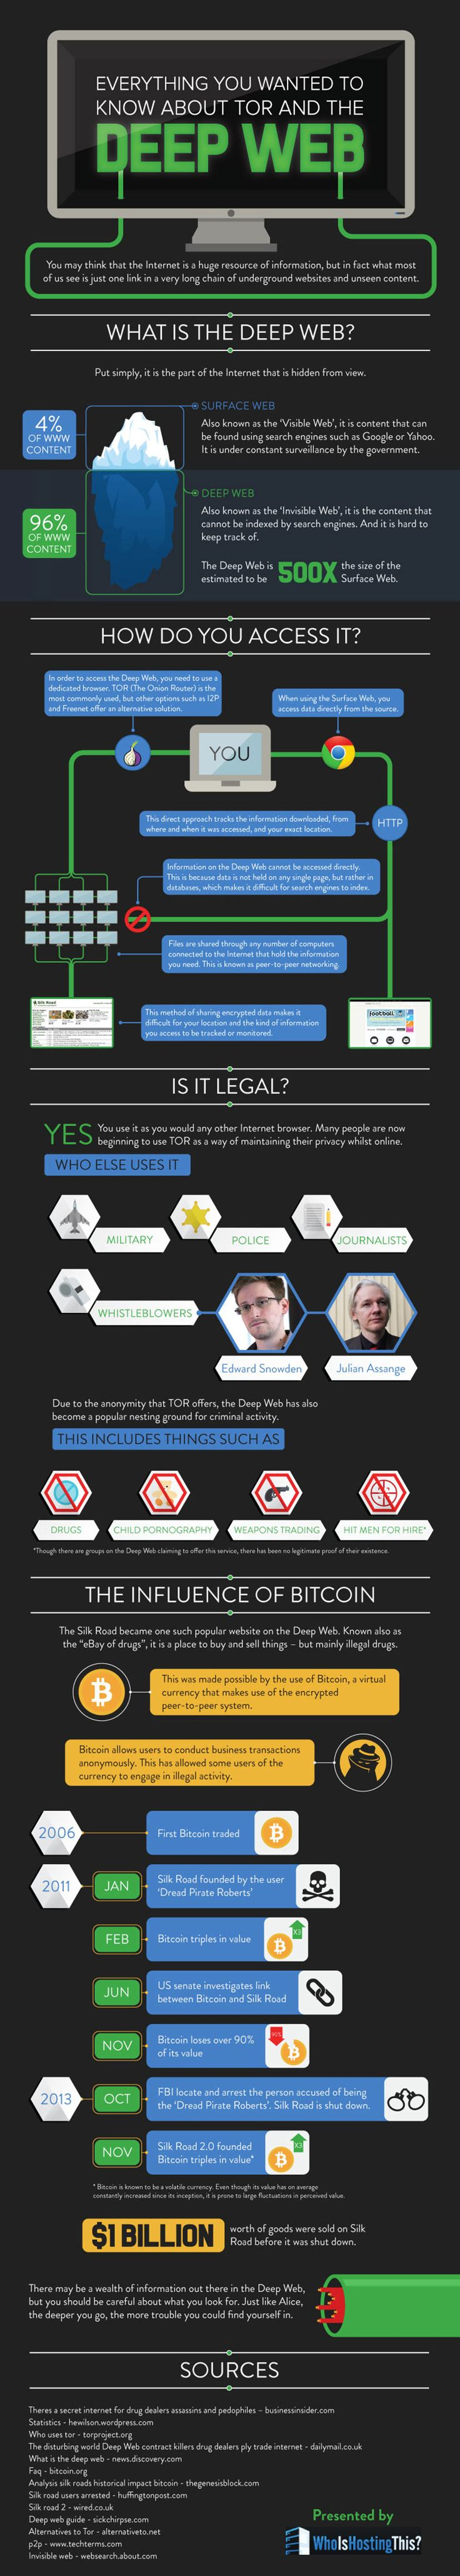 How to Access The Deep Web Safely Infographic. Topic: dark web, darknet, deepnet, internet, webpage, onion websites, Tor browser, private network, anonymous.